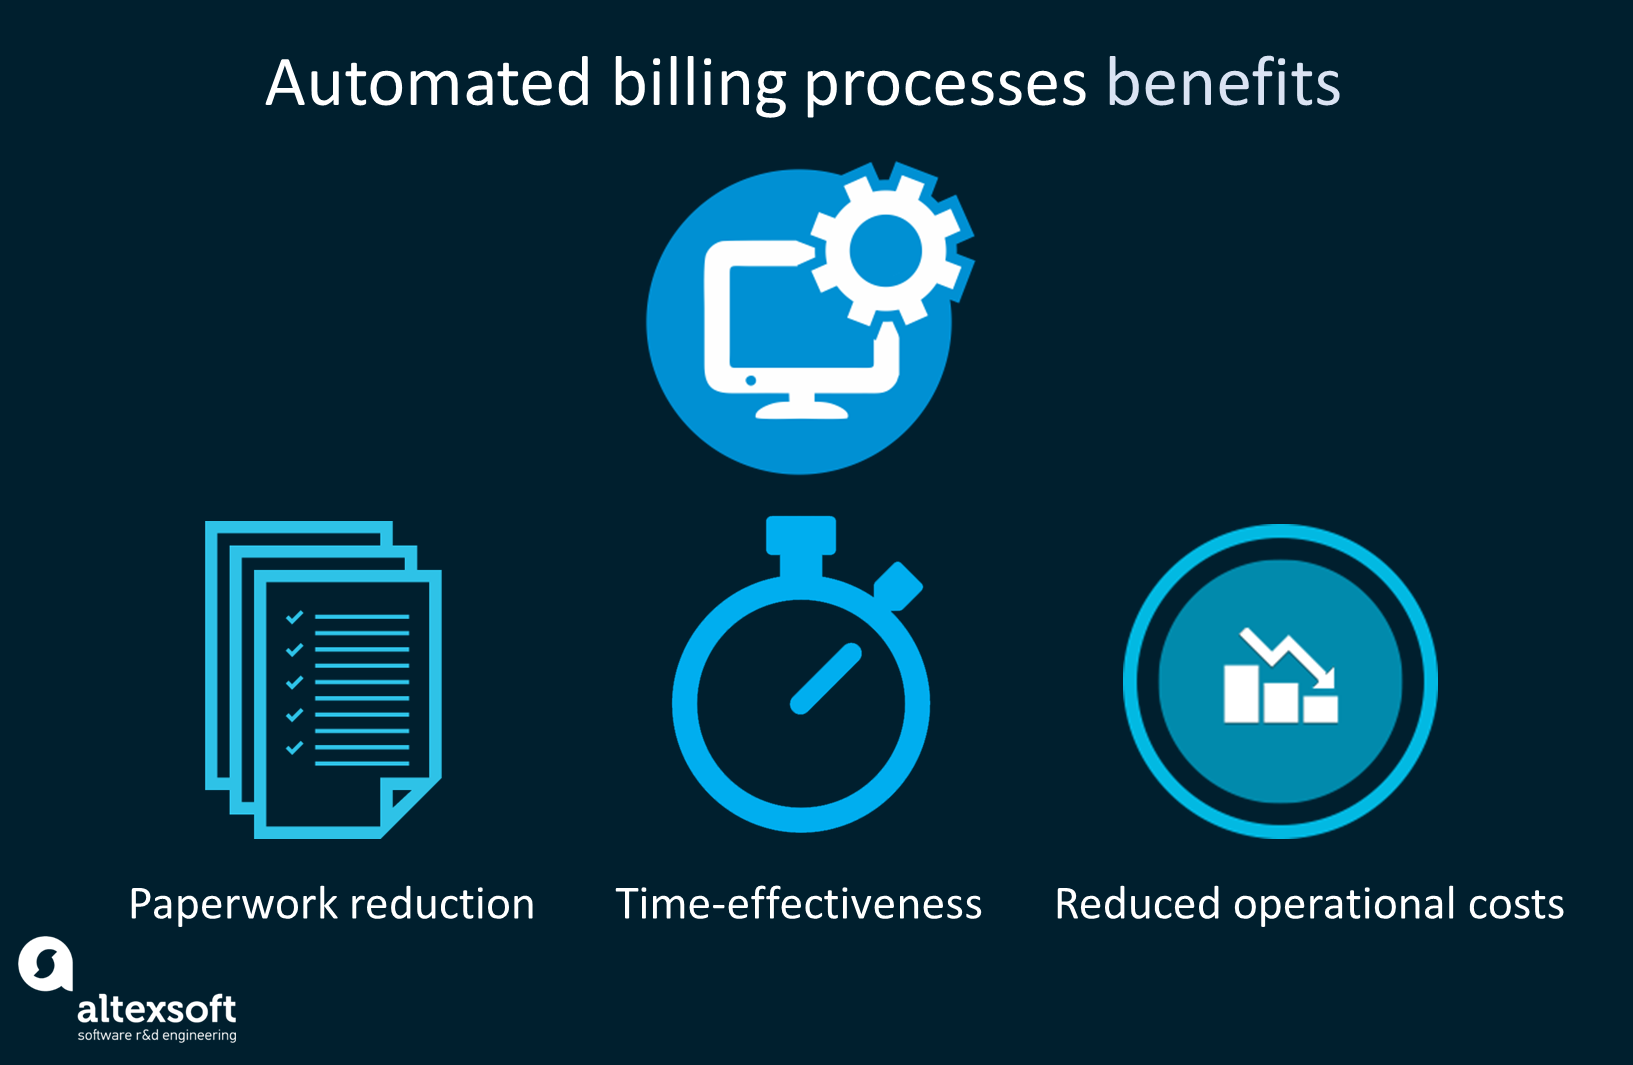 Benefits brought by the automation of medical billing